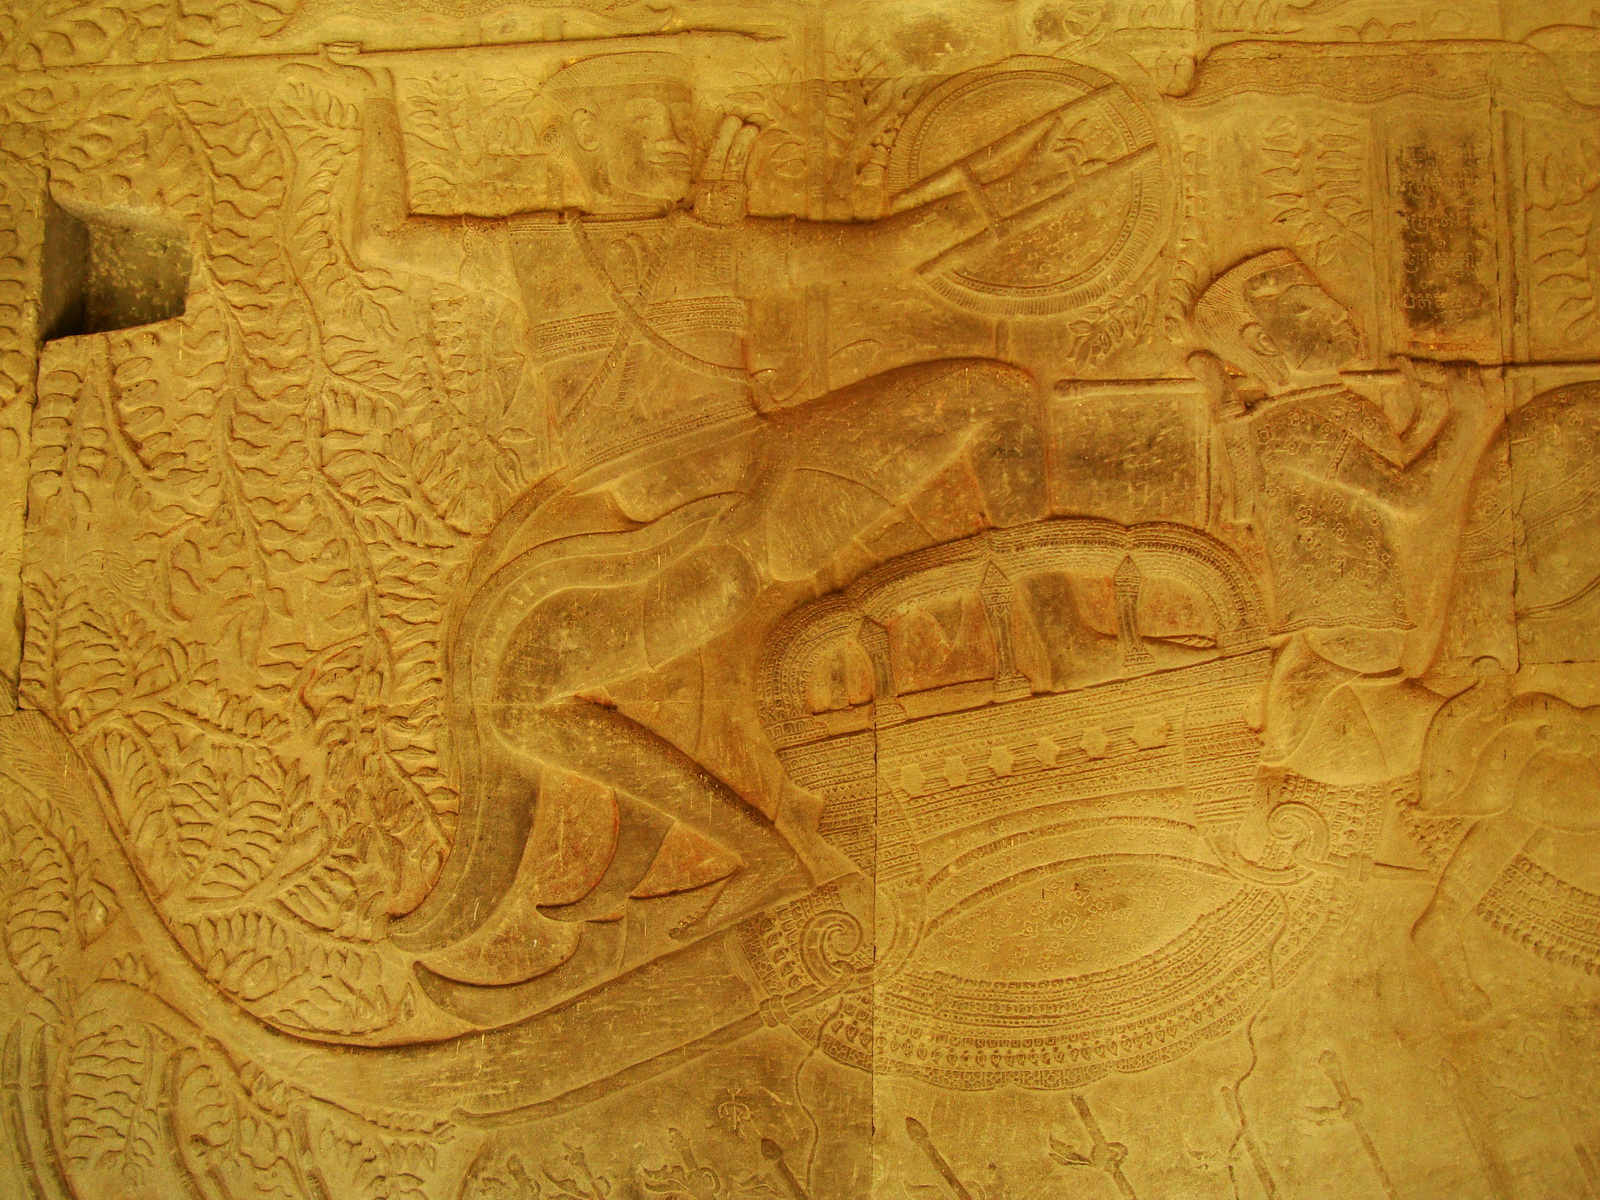 Angkor Wat Bas relief S Gallery W Wing Historic Procession 055